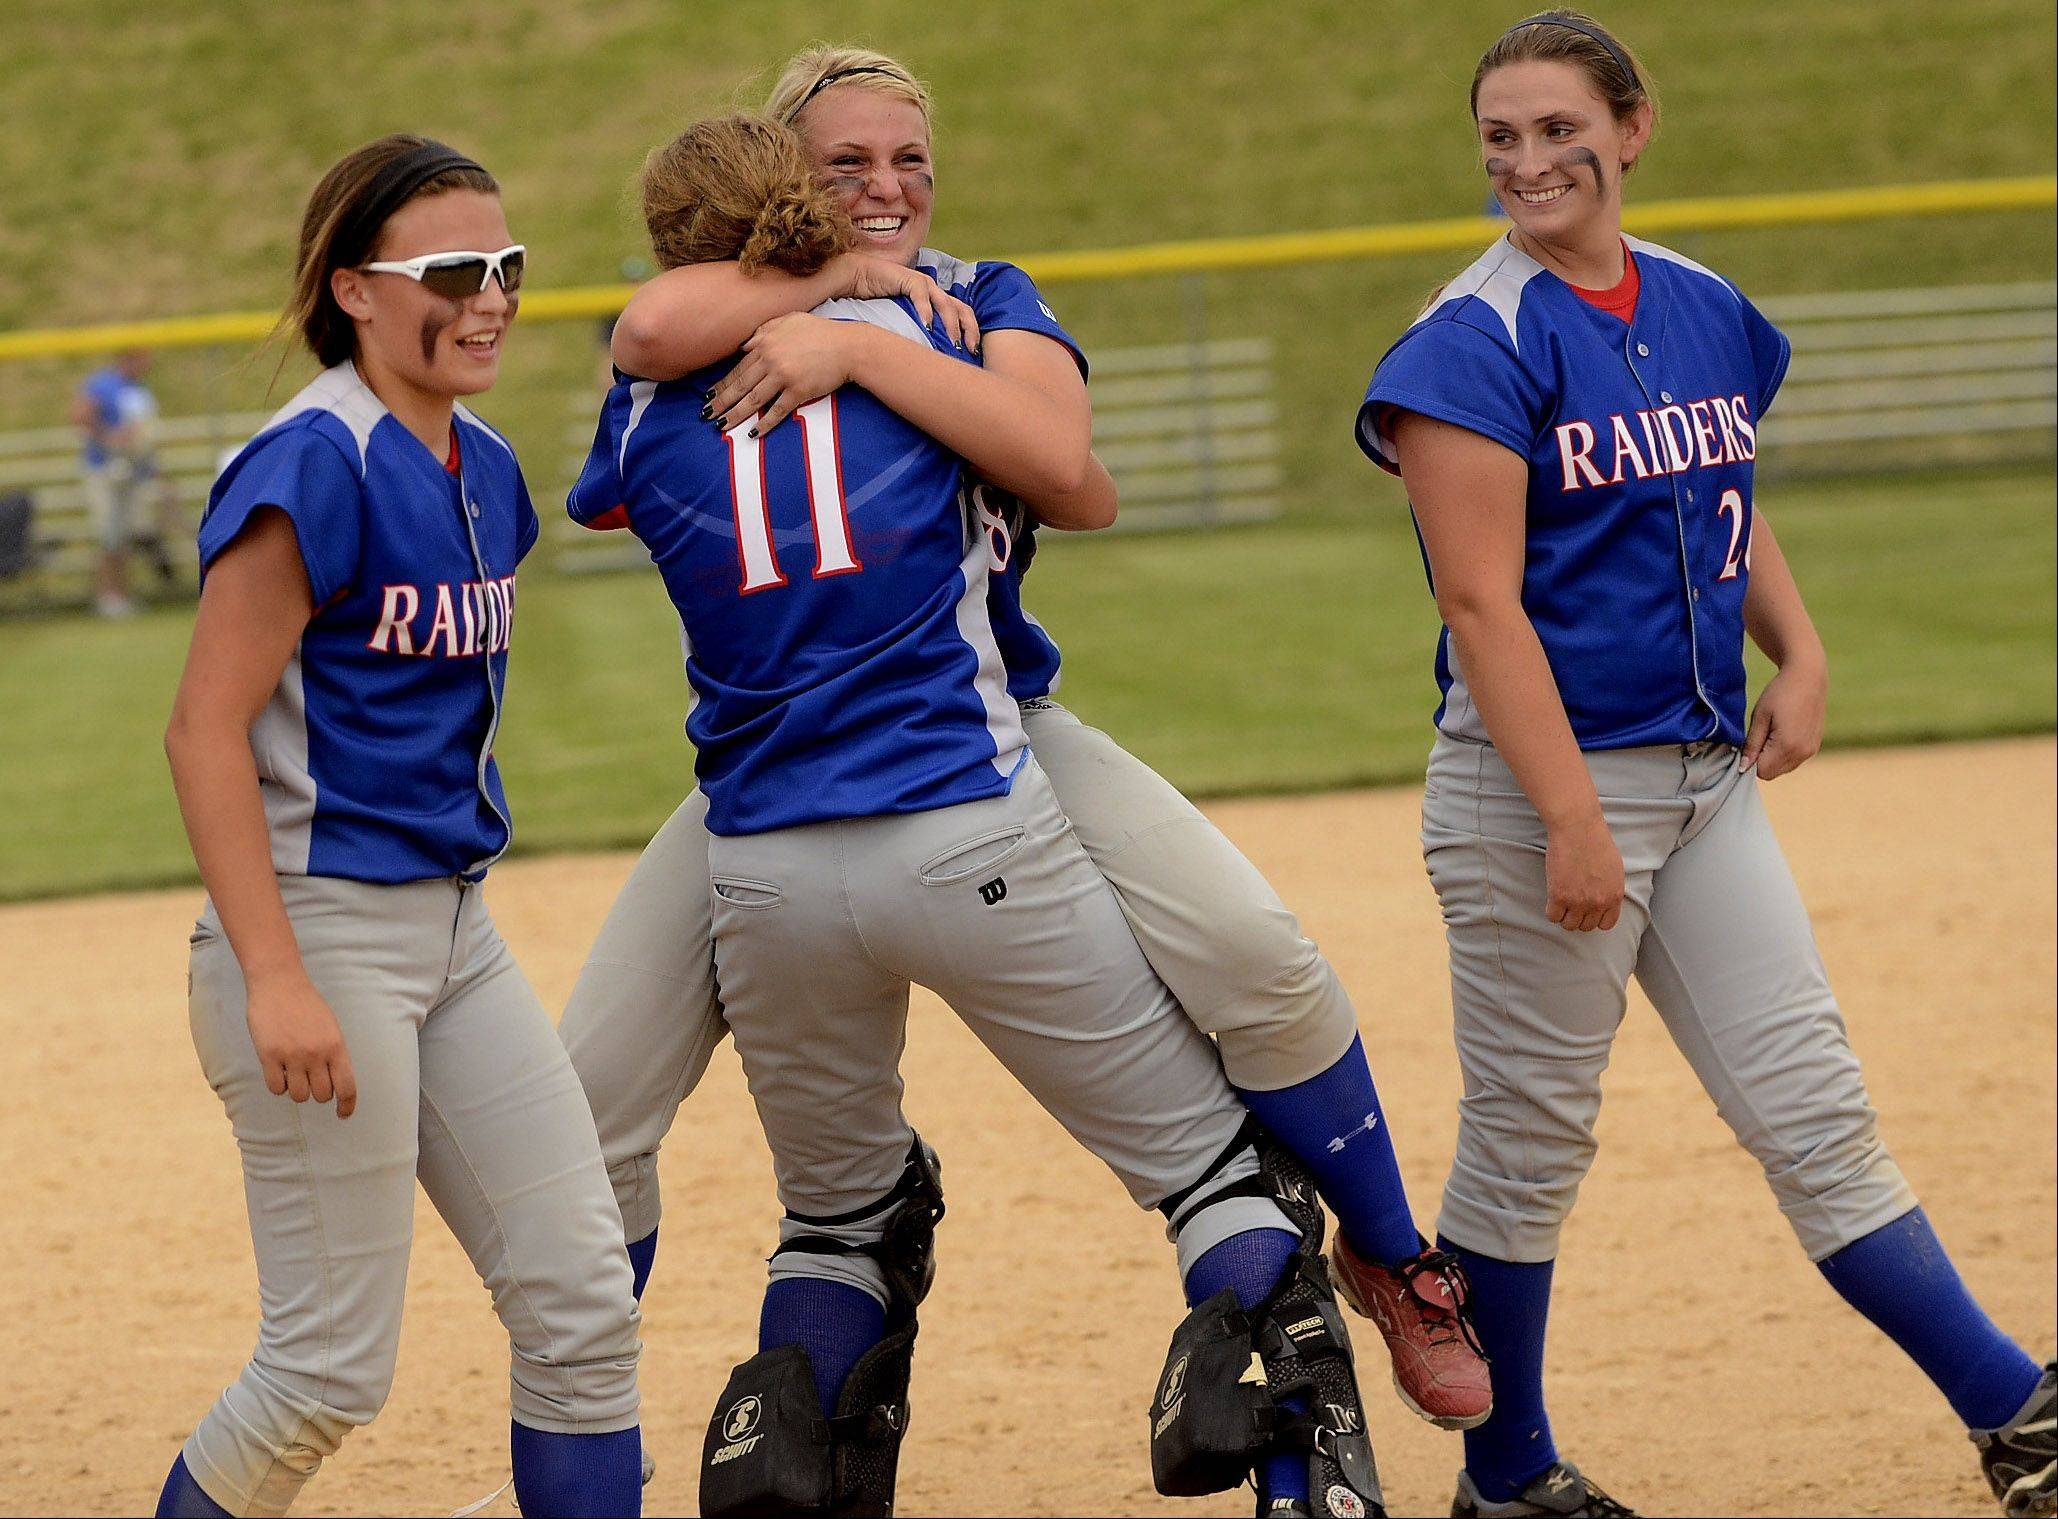 Catcher Jane Trzaska, left, and pitcher Stephanie Chitkowski embrace after the final out of the game as Glenbard South repeats as Class 3A softball state champions.